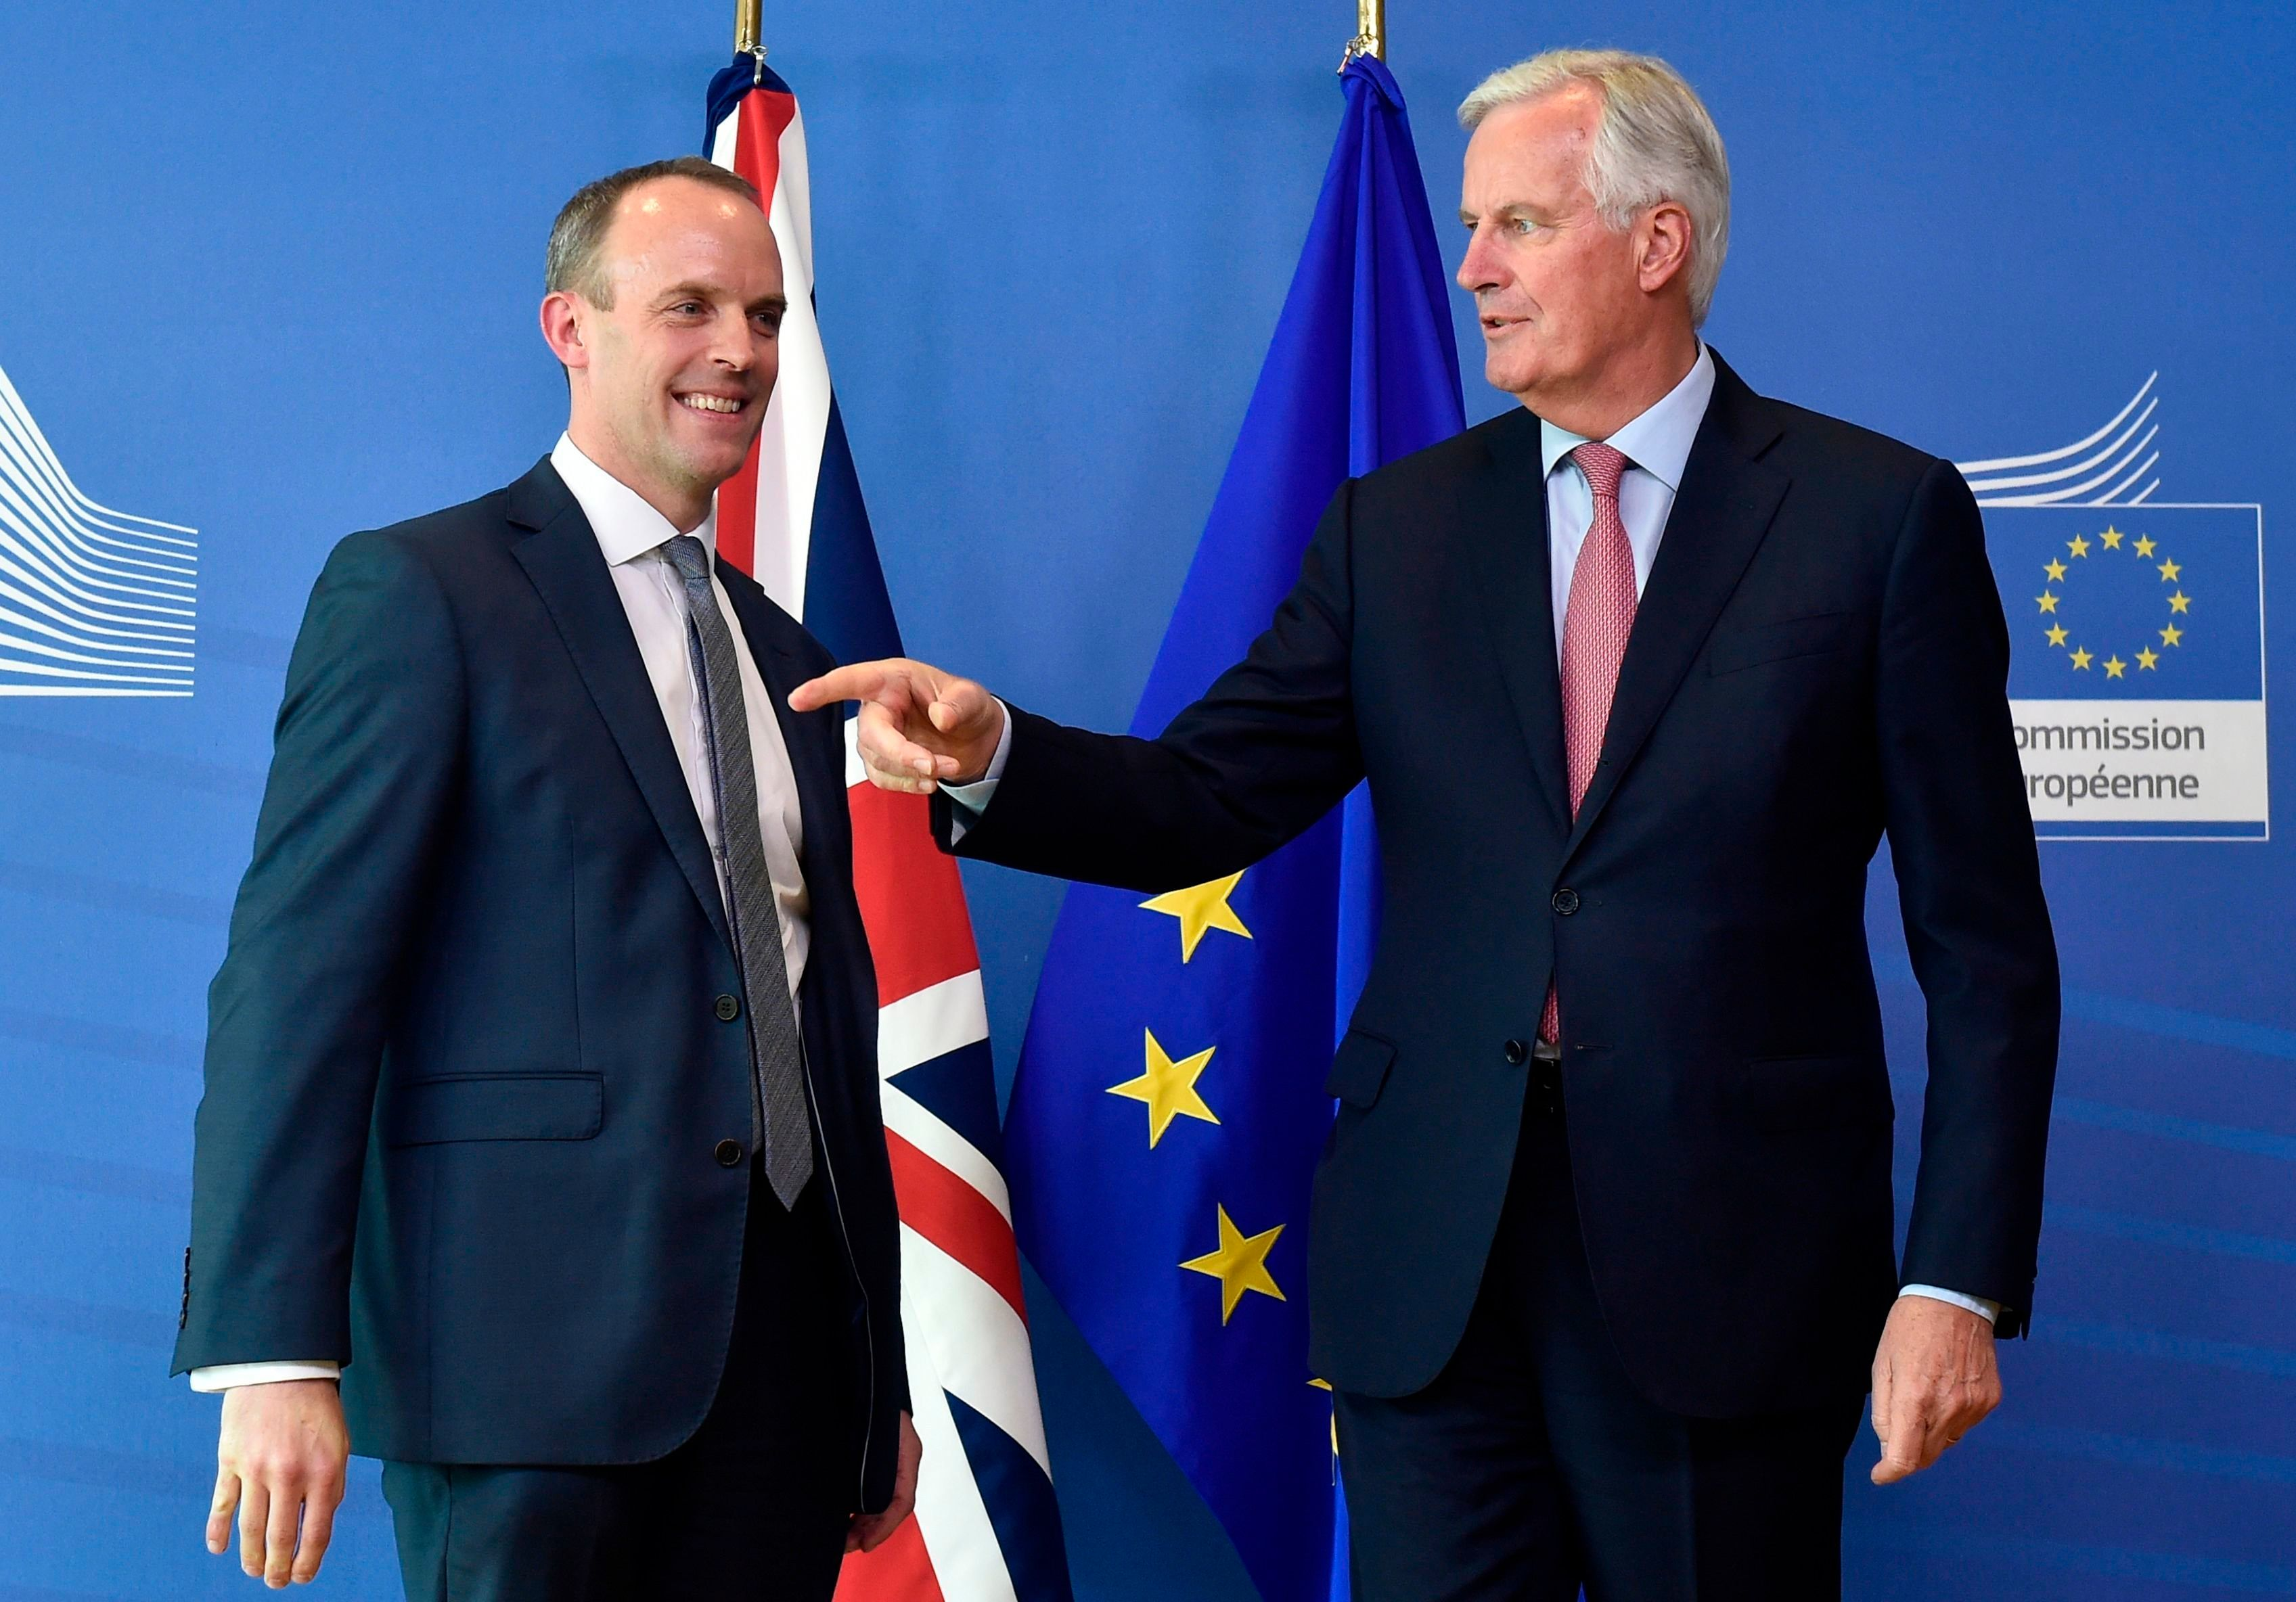 Dominic Raab with Michel Barnier in Brussels at their first